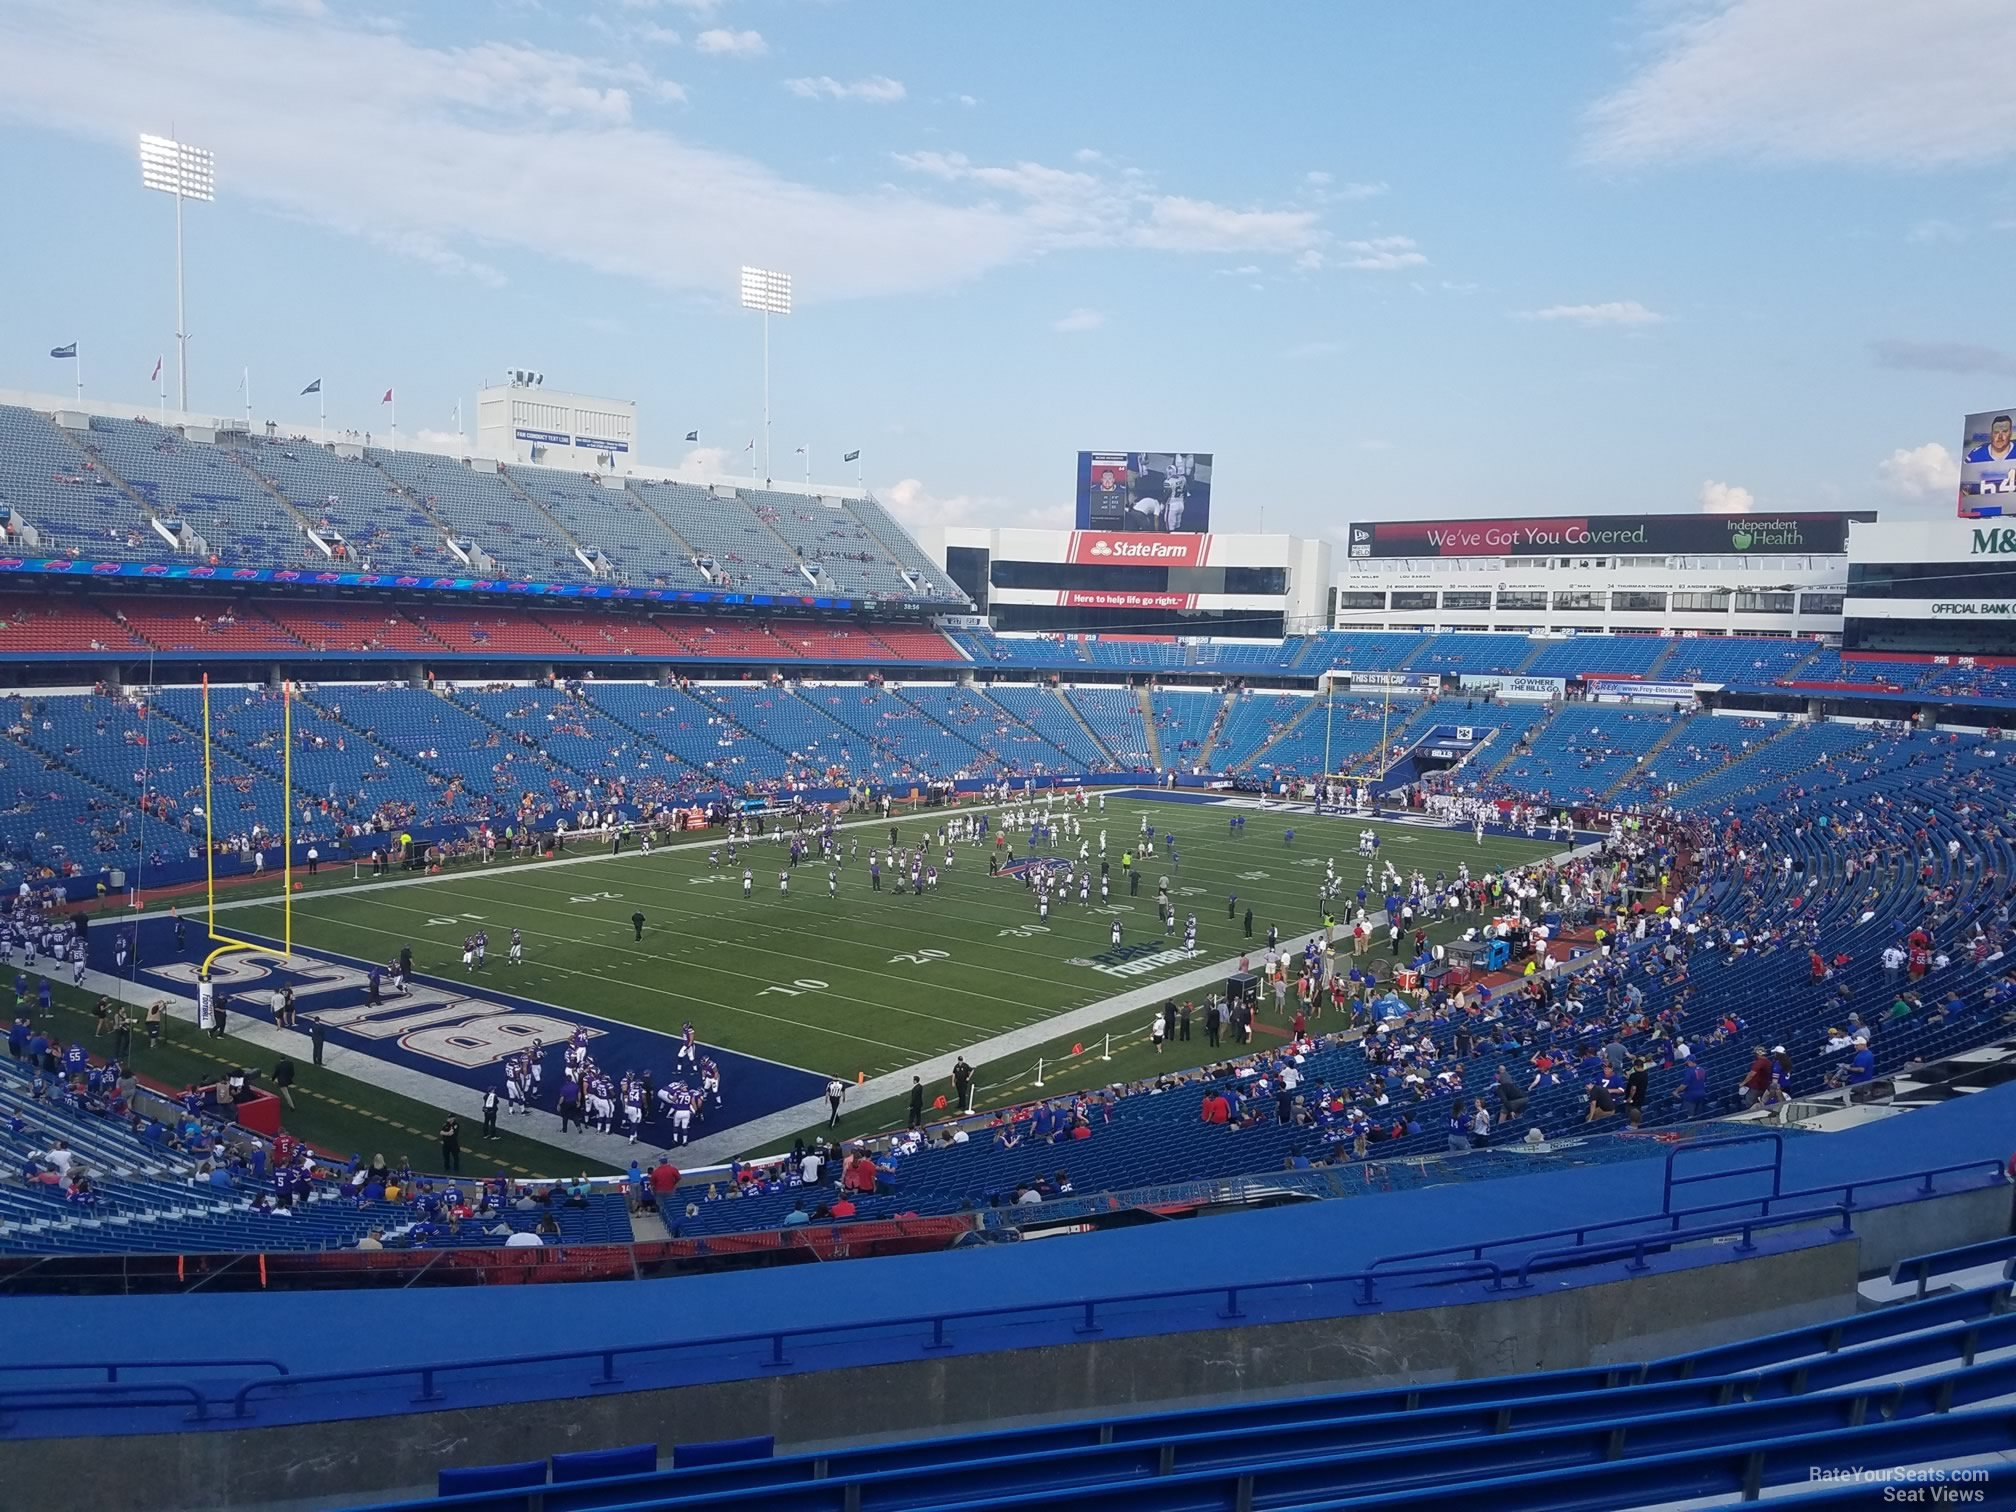 Section 240 seat view